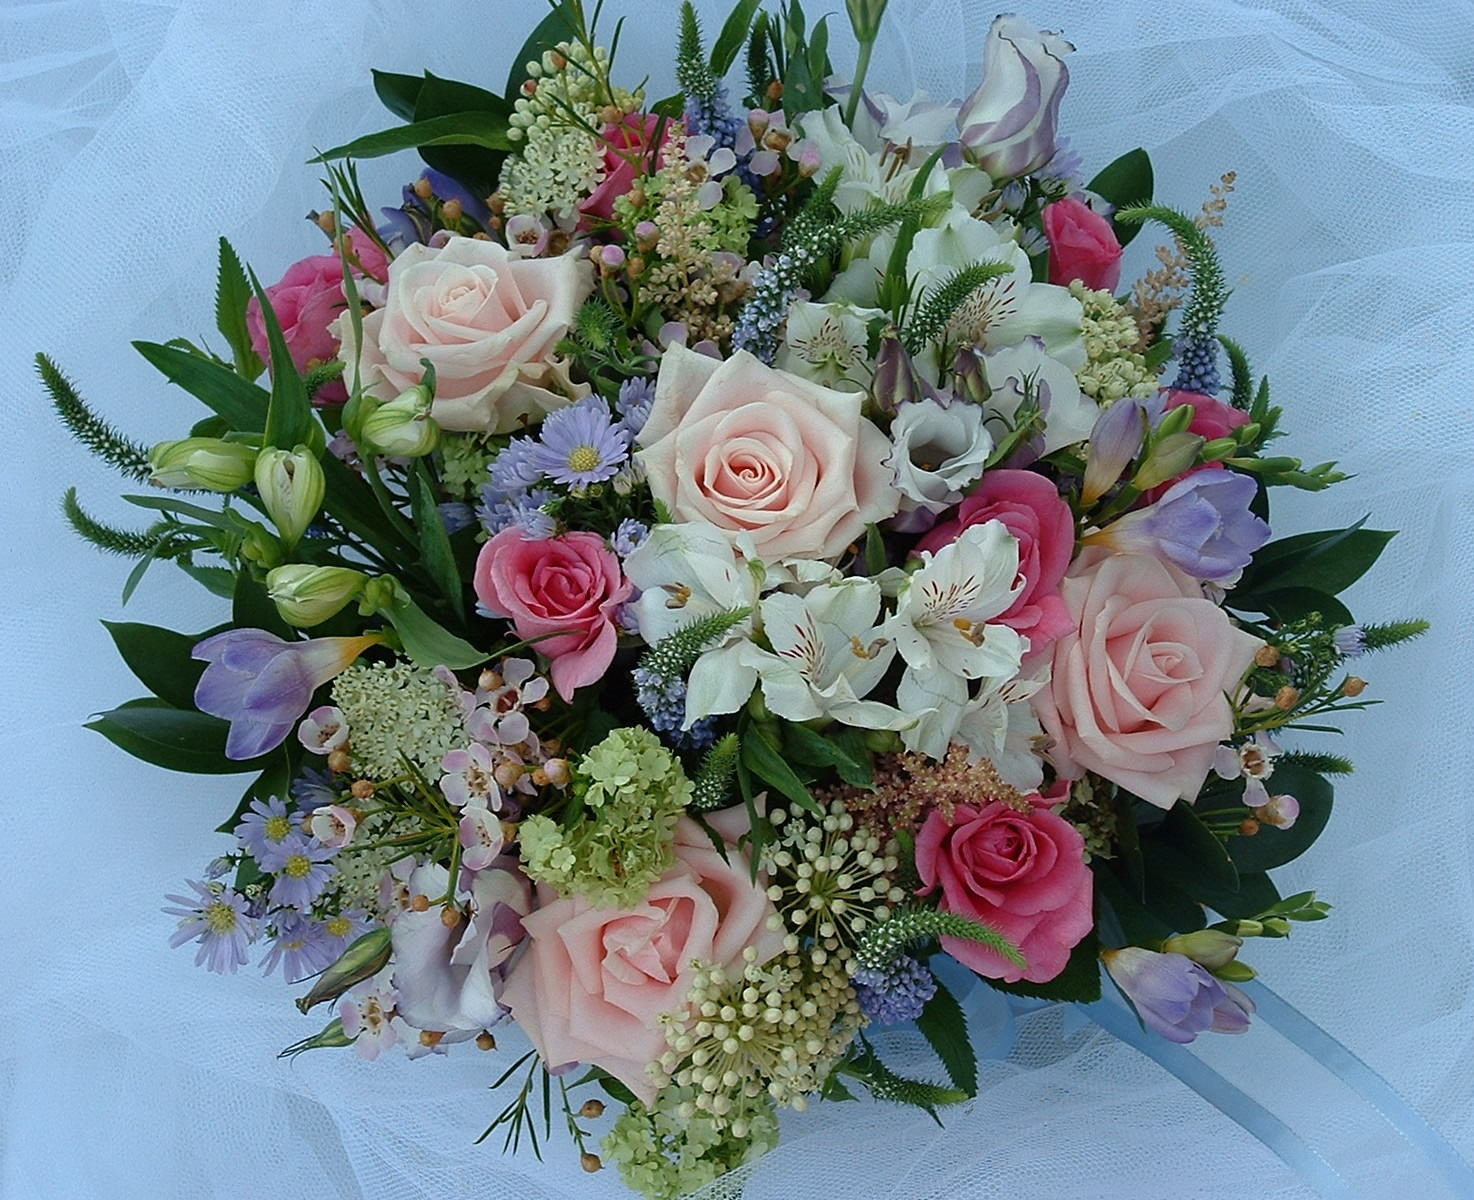 cottage garden bridal bouquet alstroemeria lilac freesia veronica september wax flowers